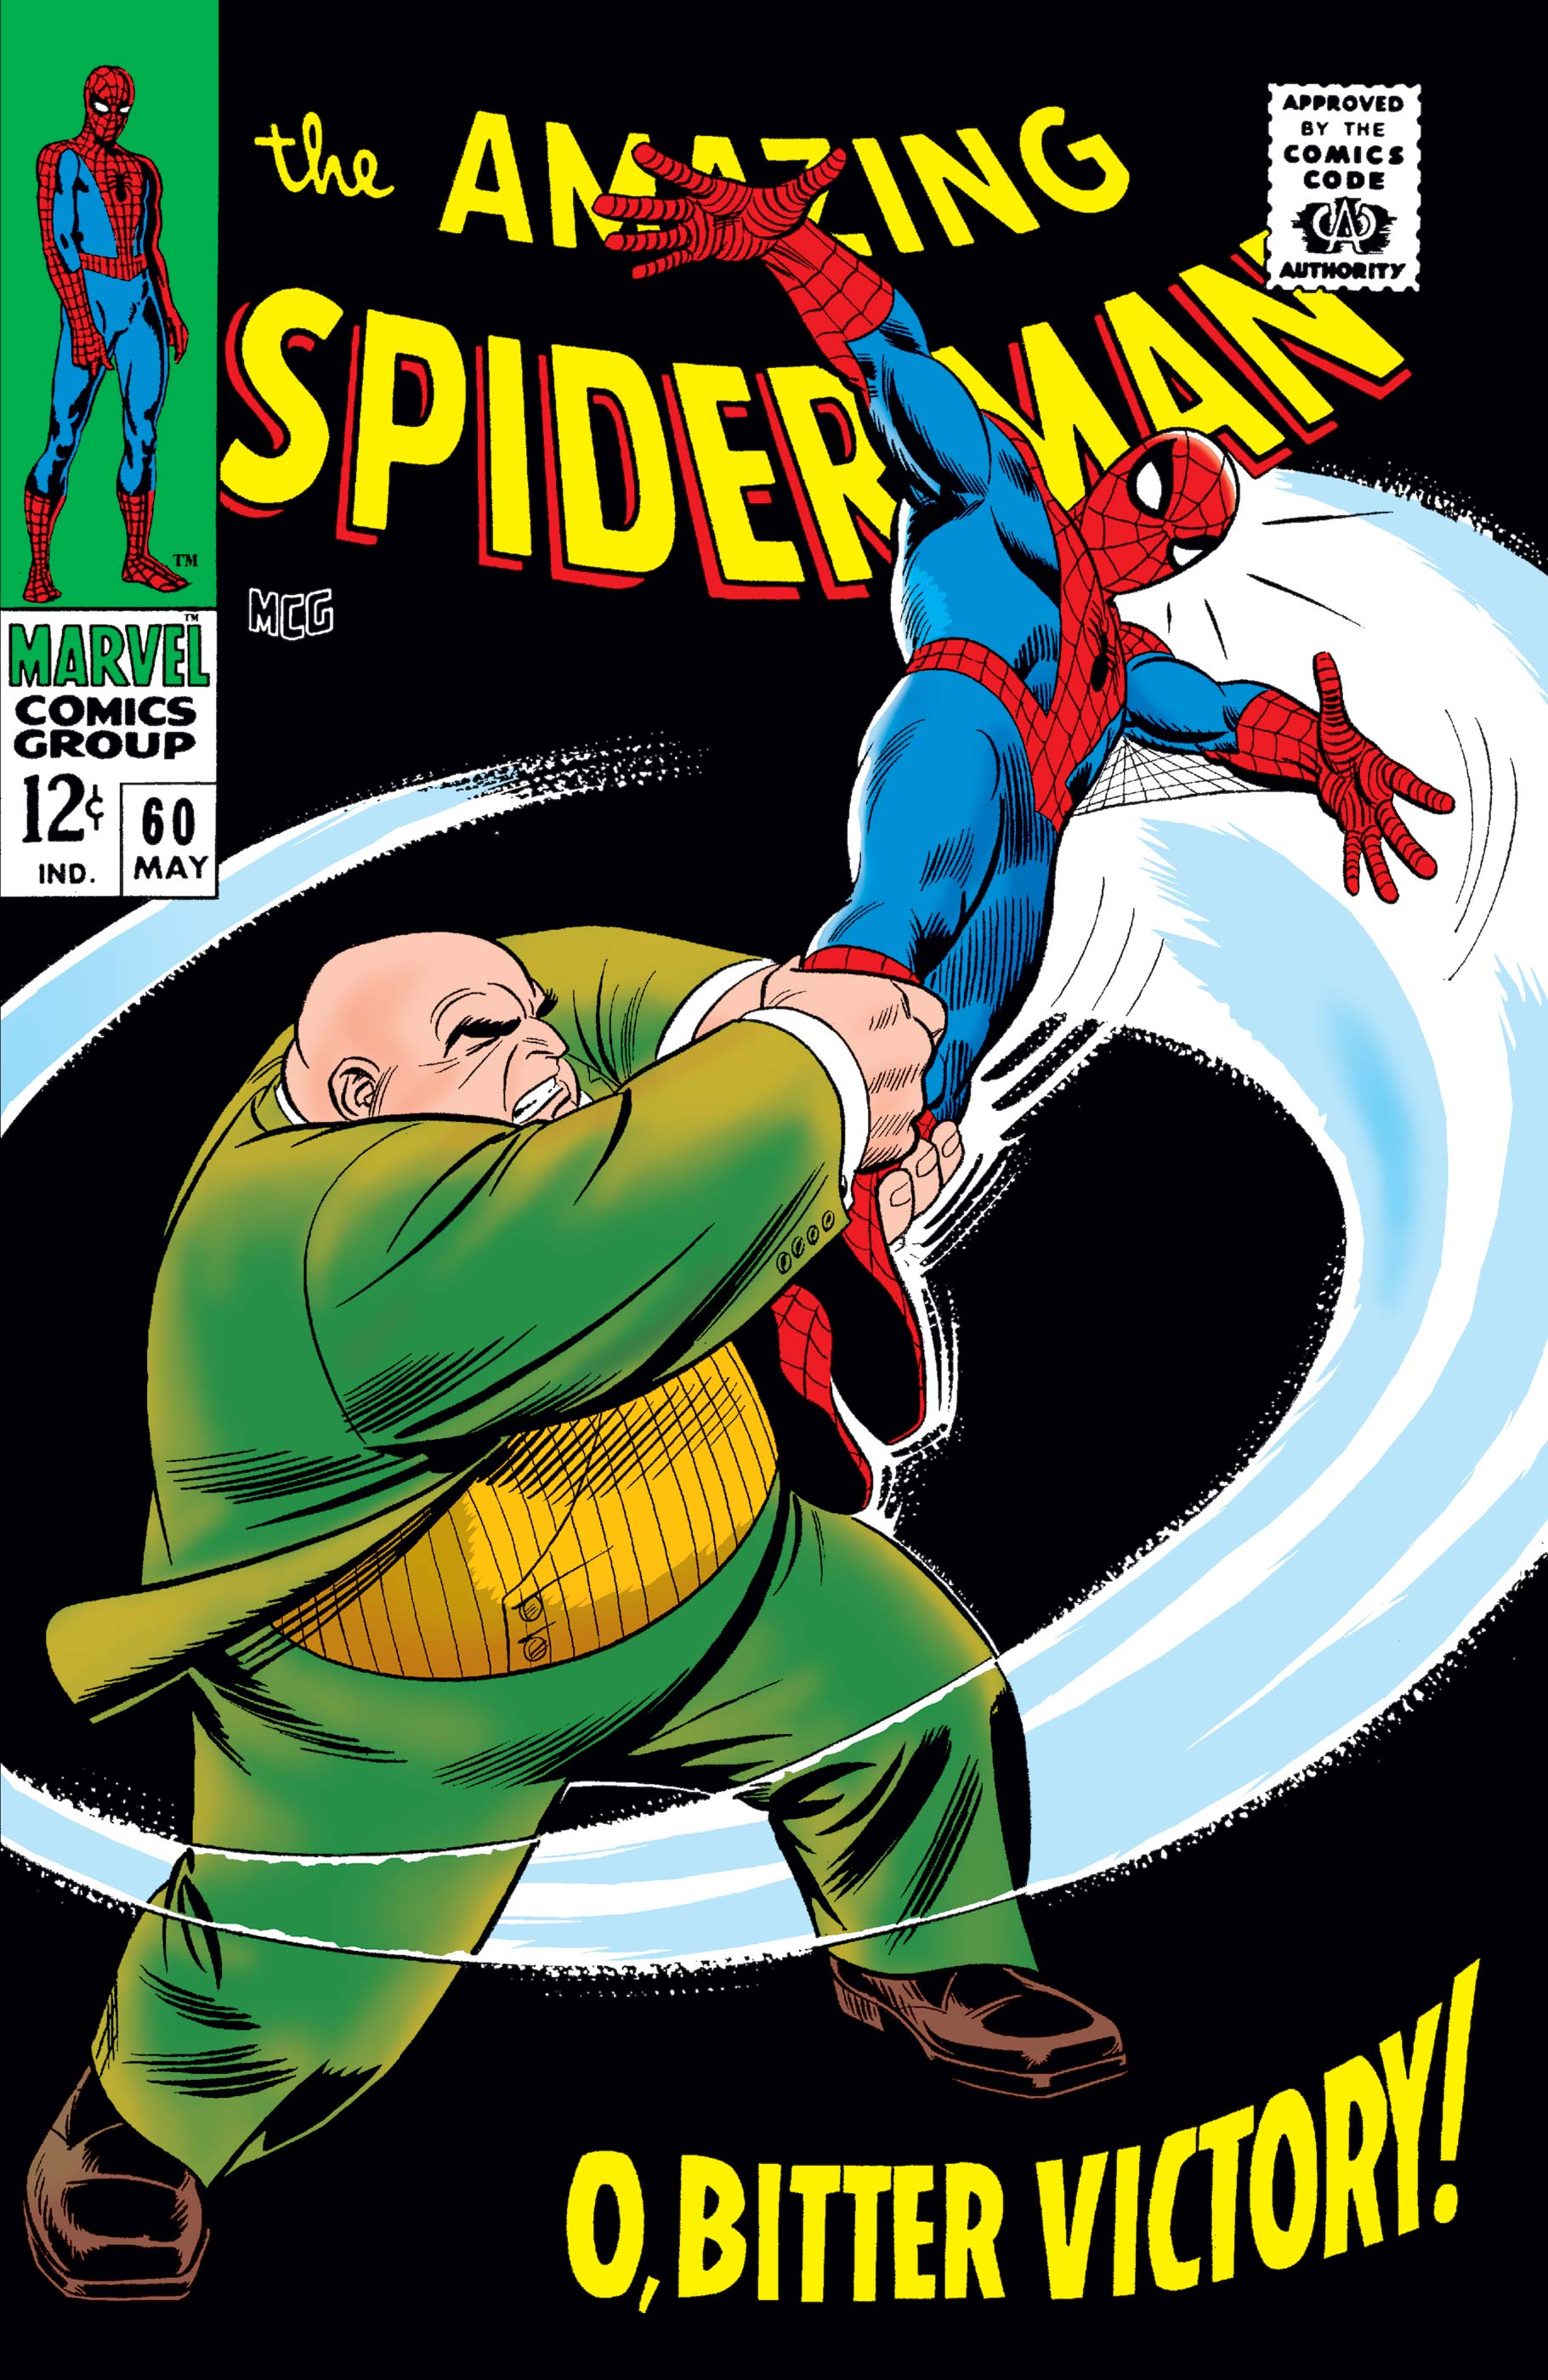 The Amazing Spider-Man (1963) #60